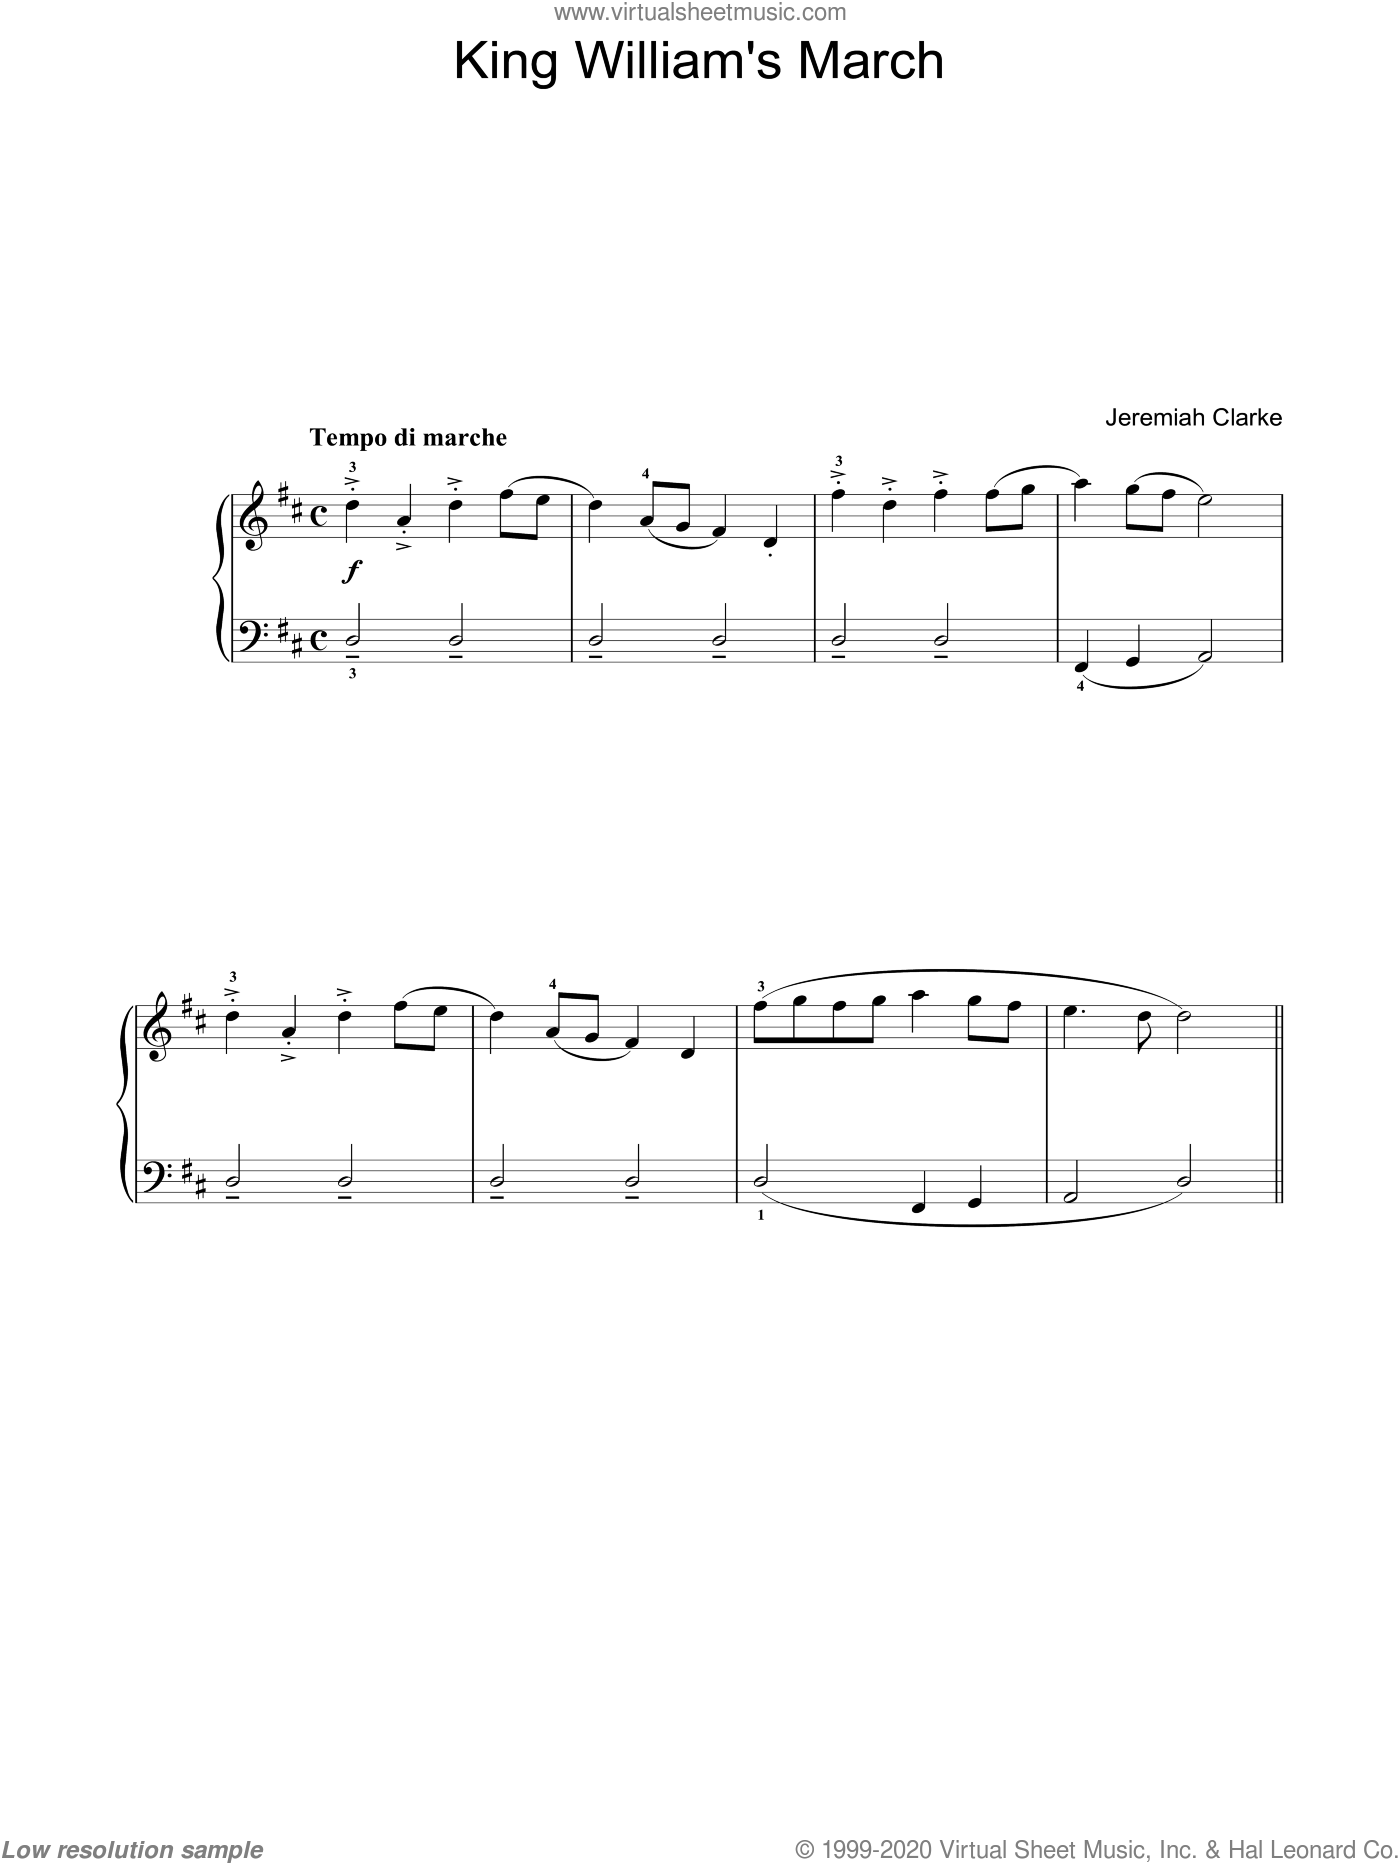 King William's March sheet music for voice, piano or guitar by Jeremiah Clarke, classical score, intermediate skill level